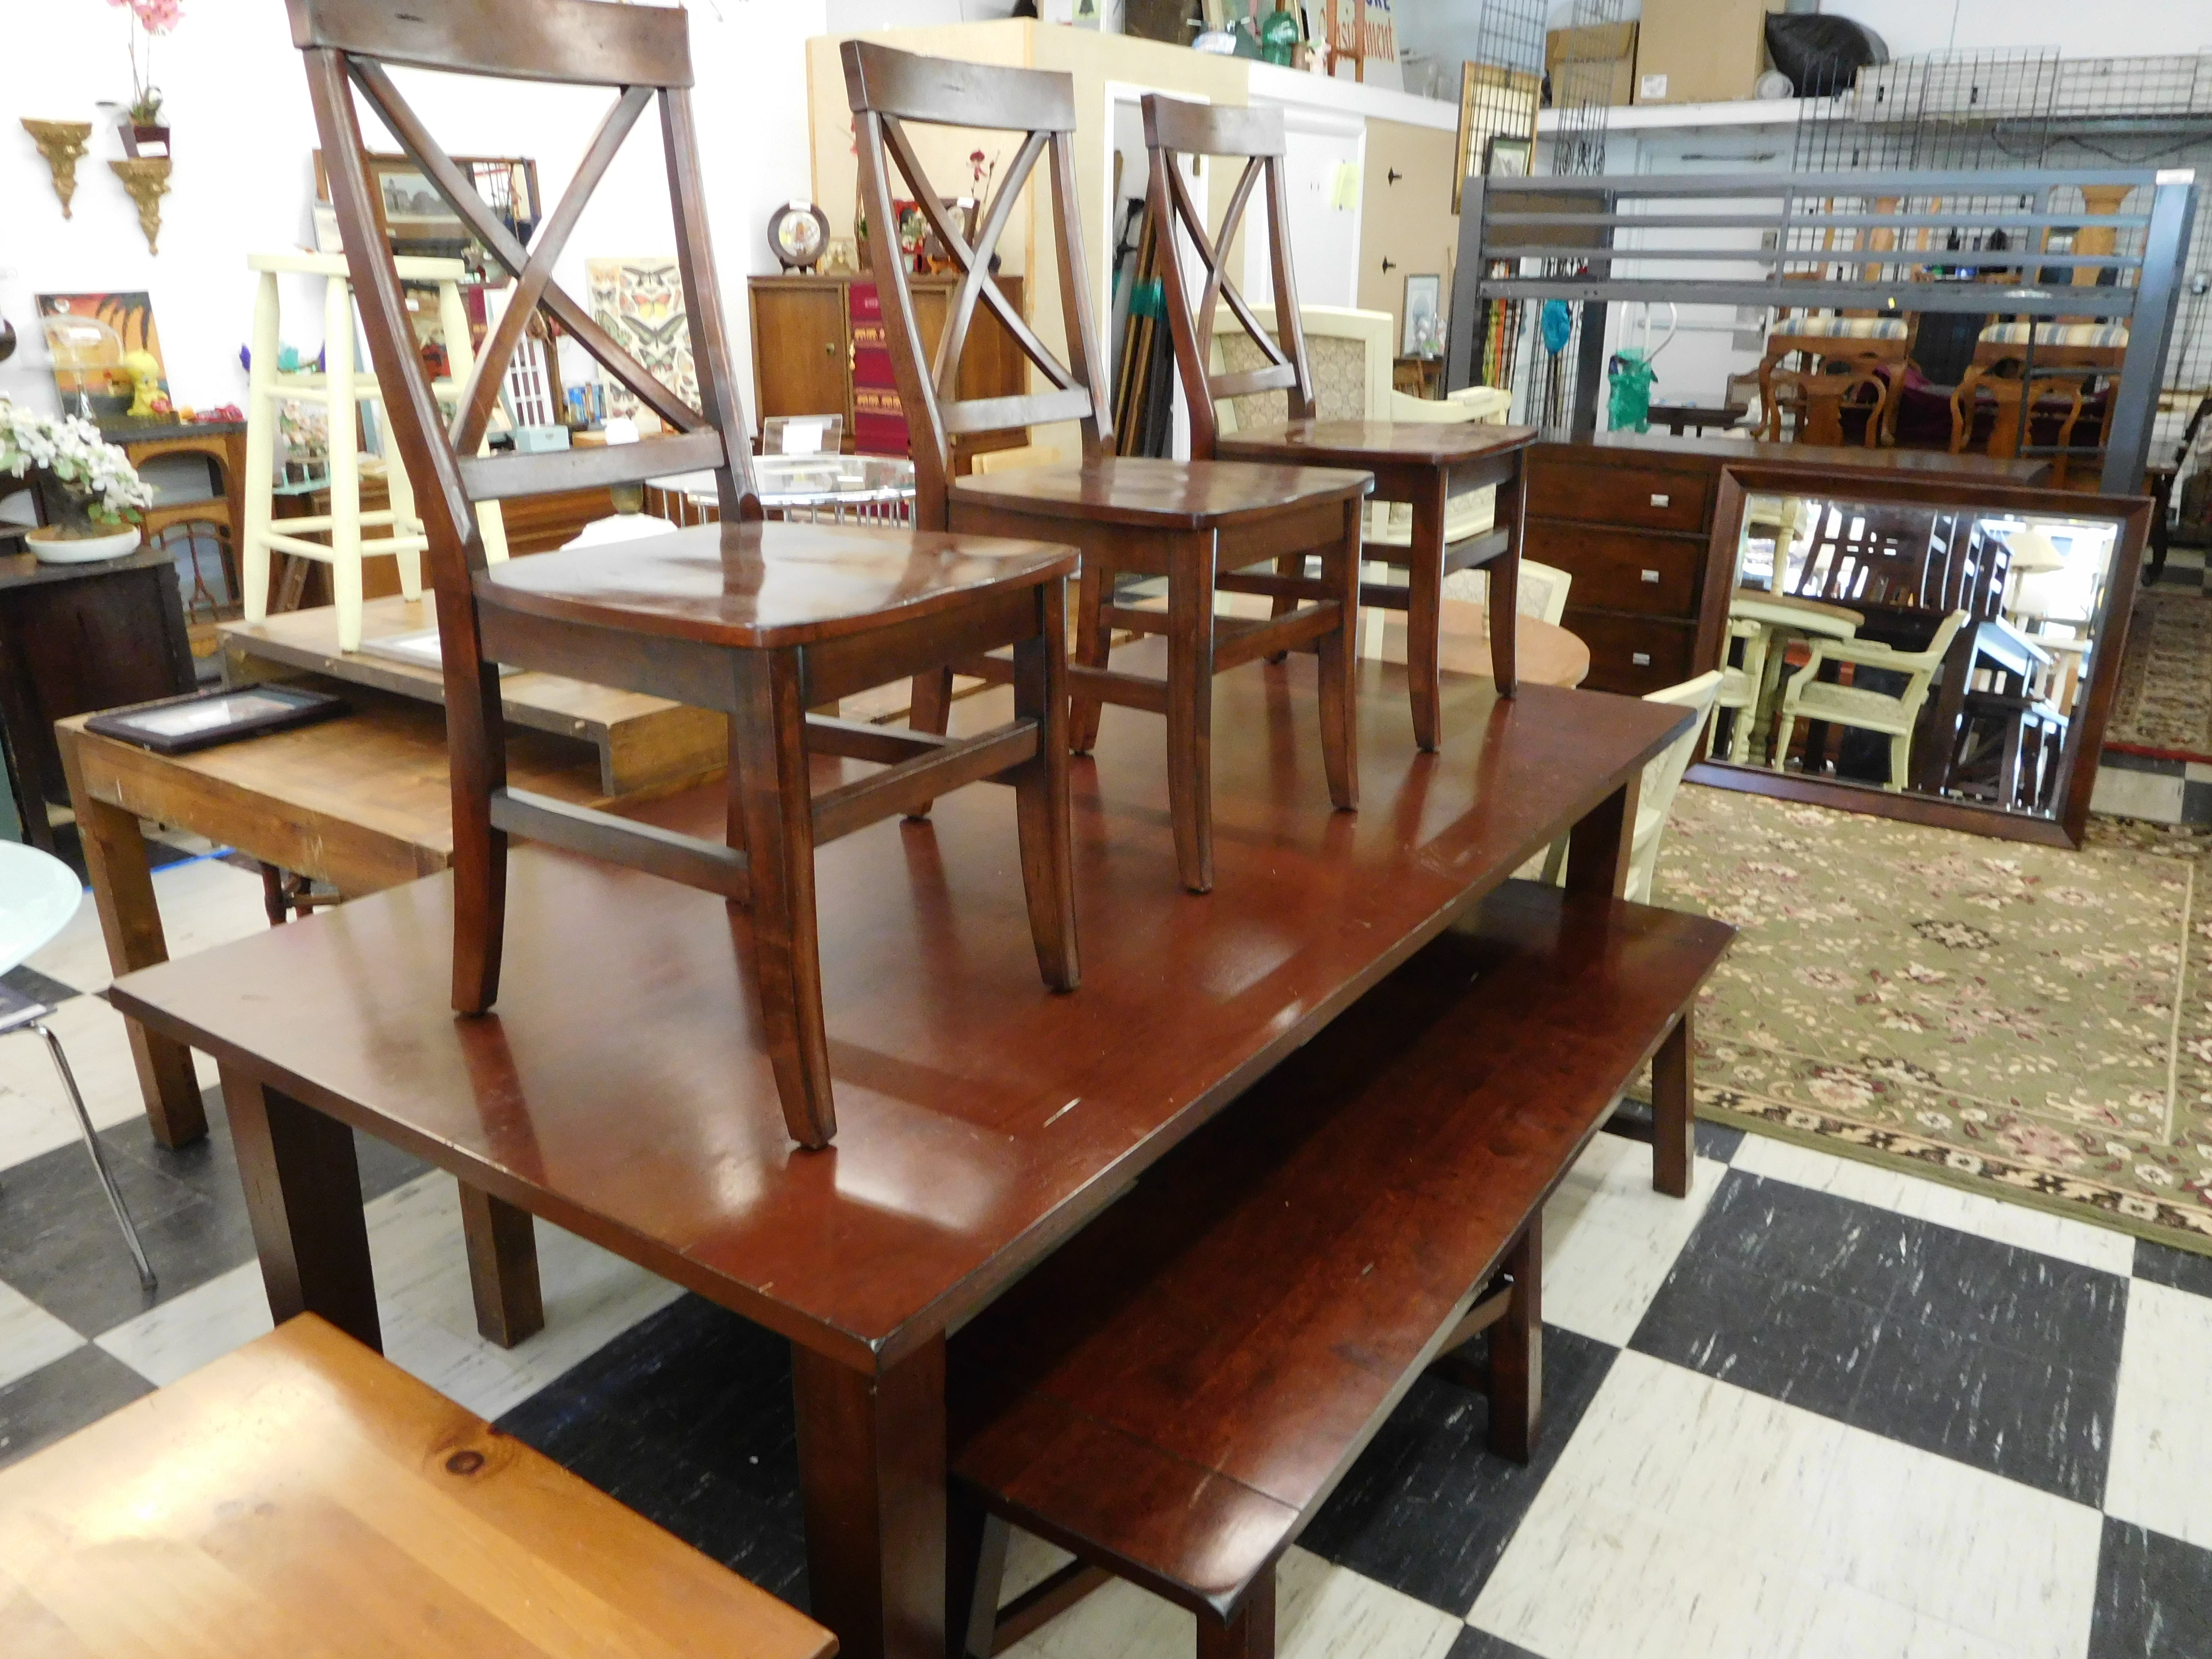 Farm Table with Bench and 3 Chairs